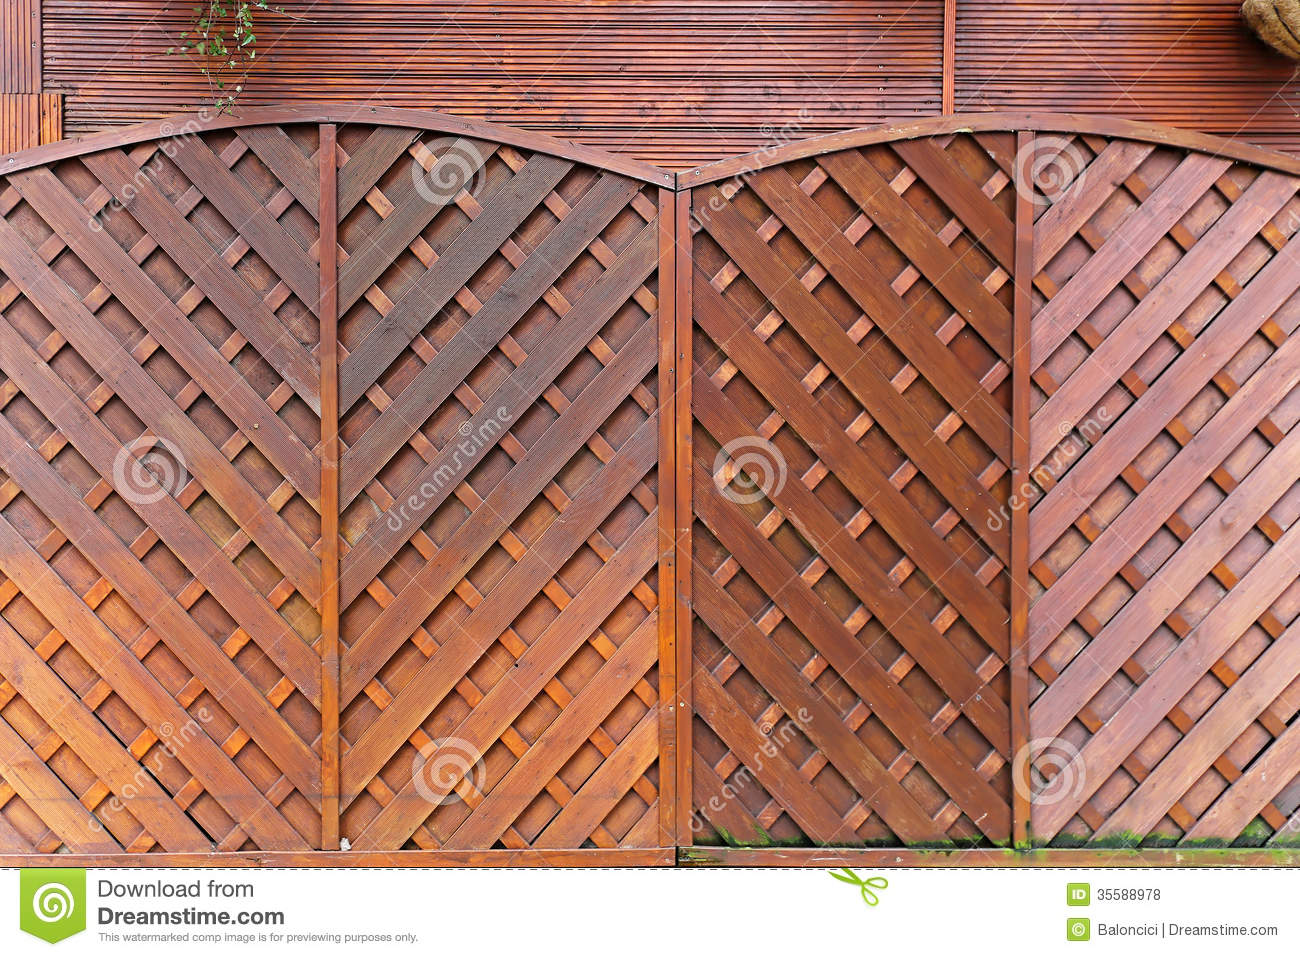 brown fencing garden panels wood ... - Wooden Fencing Panels Royalty Free Stock Photos - Image: 35588978